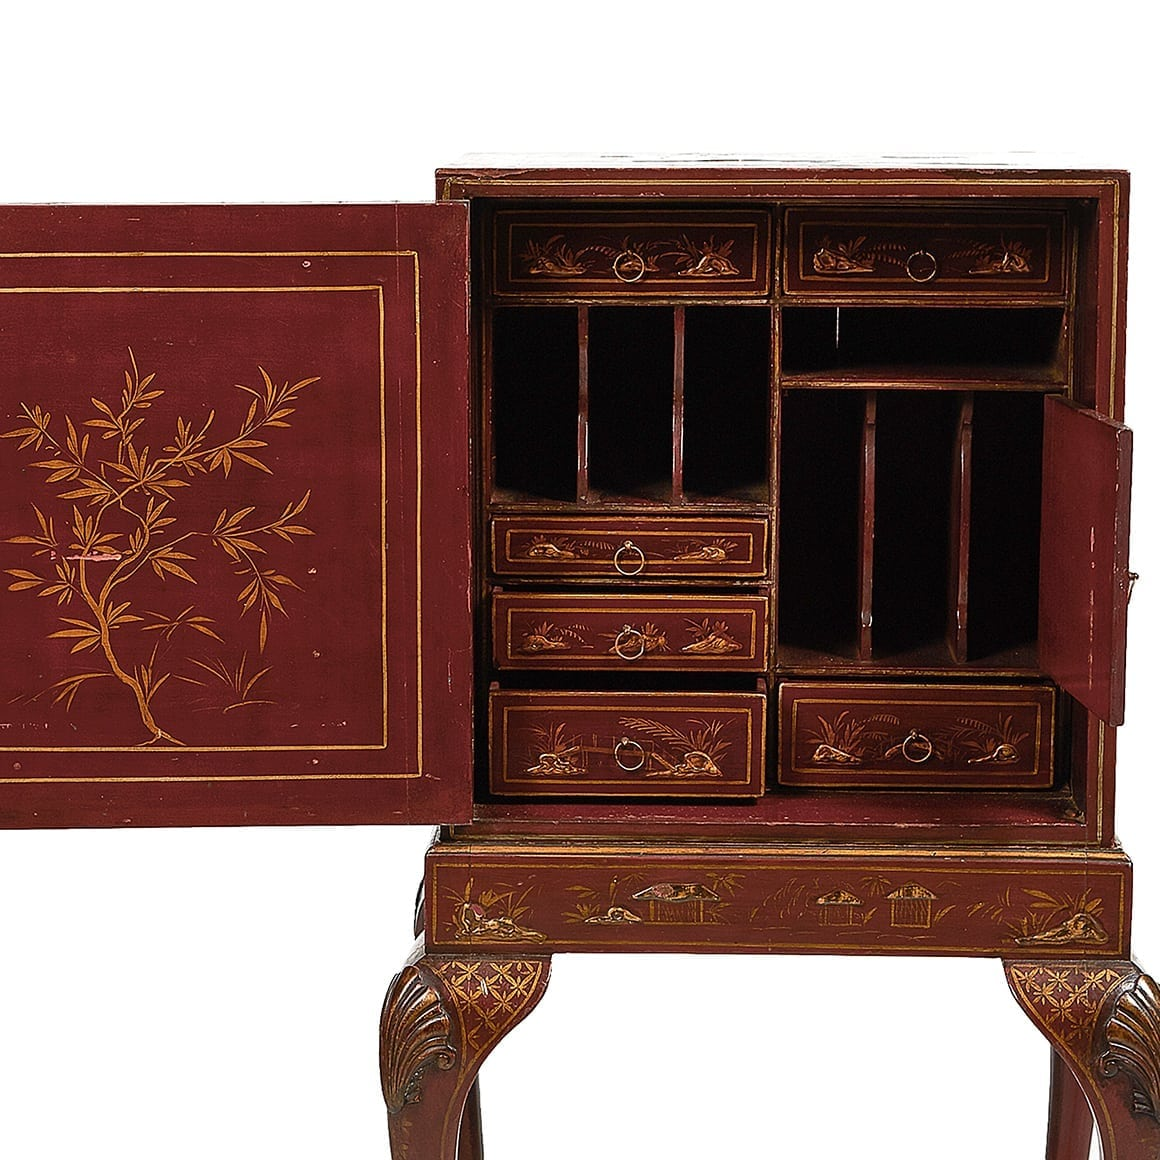 Home/Furniture/Bookcases and Cabinets - 3041 - 19th Century Chinoiserie Cabinet On Stand, With Fitted